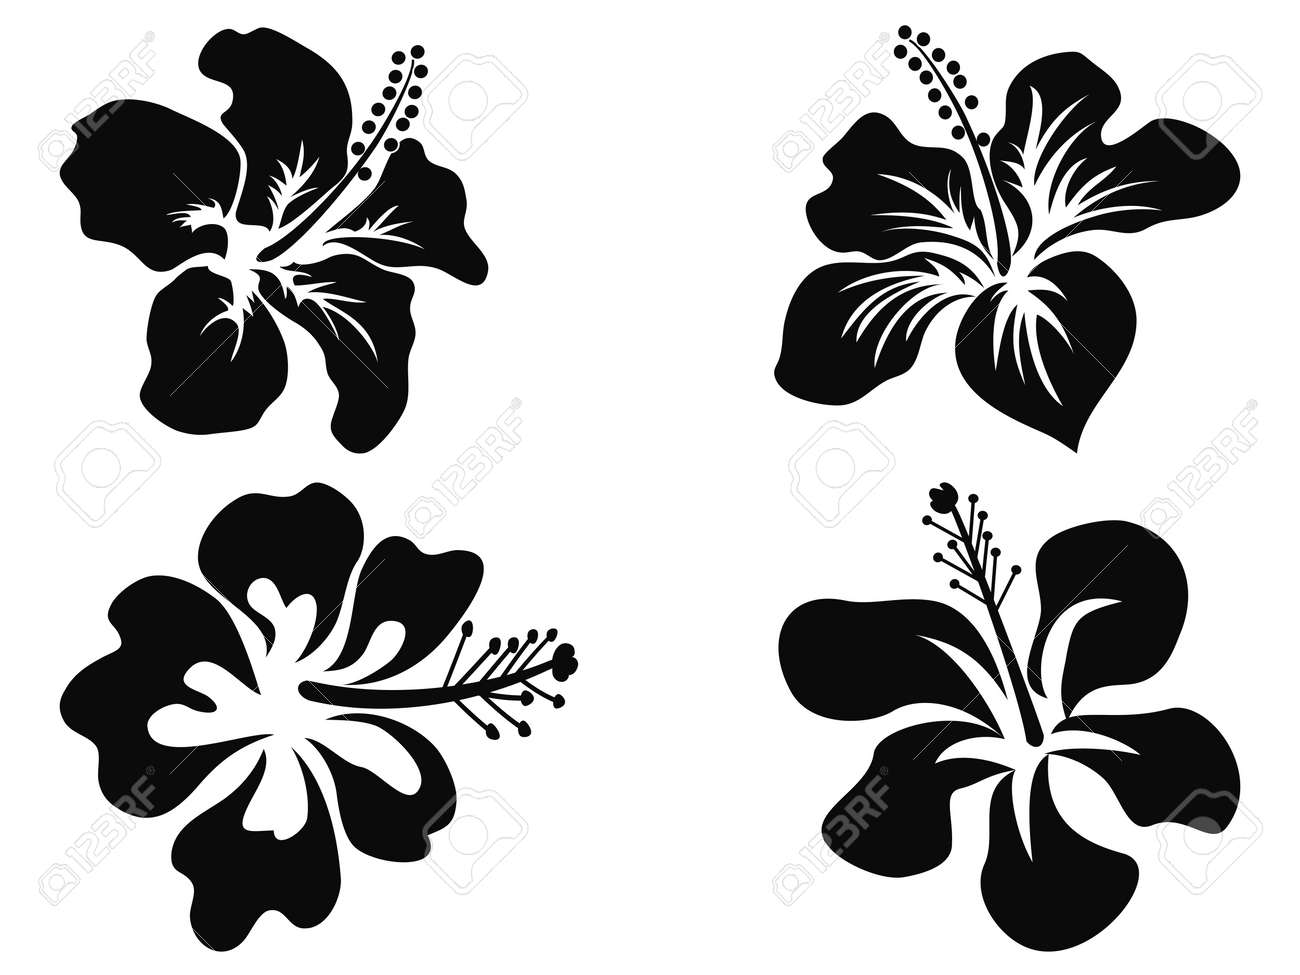 Isolated Black Hibiscus Vector Silhouettes On White Background Stock